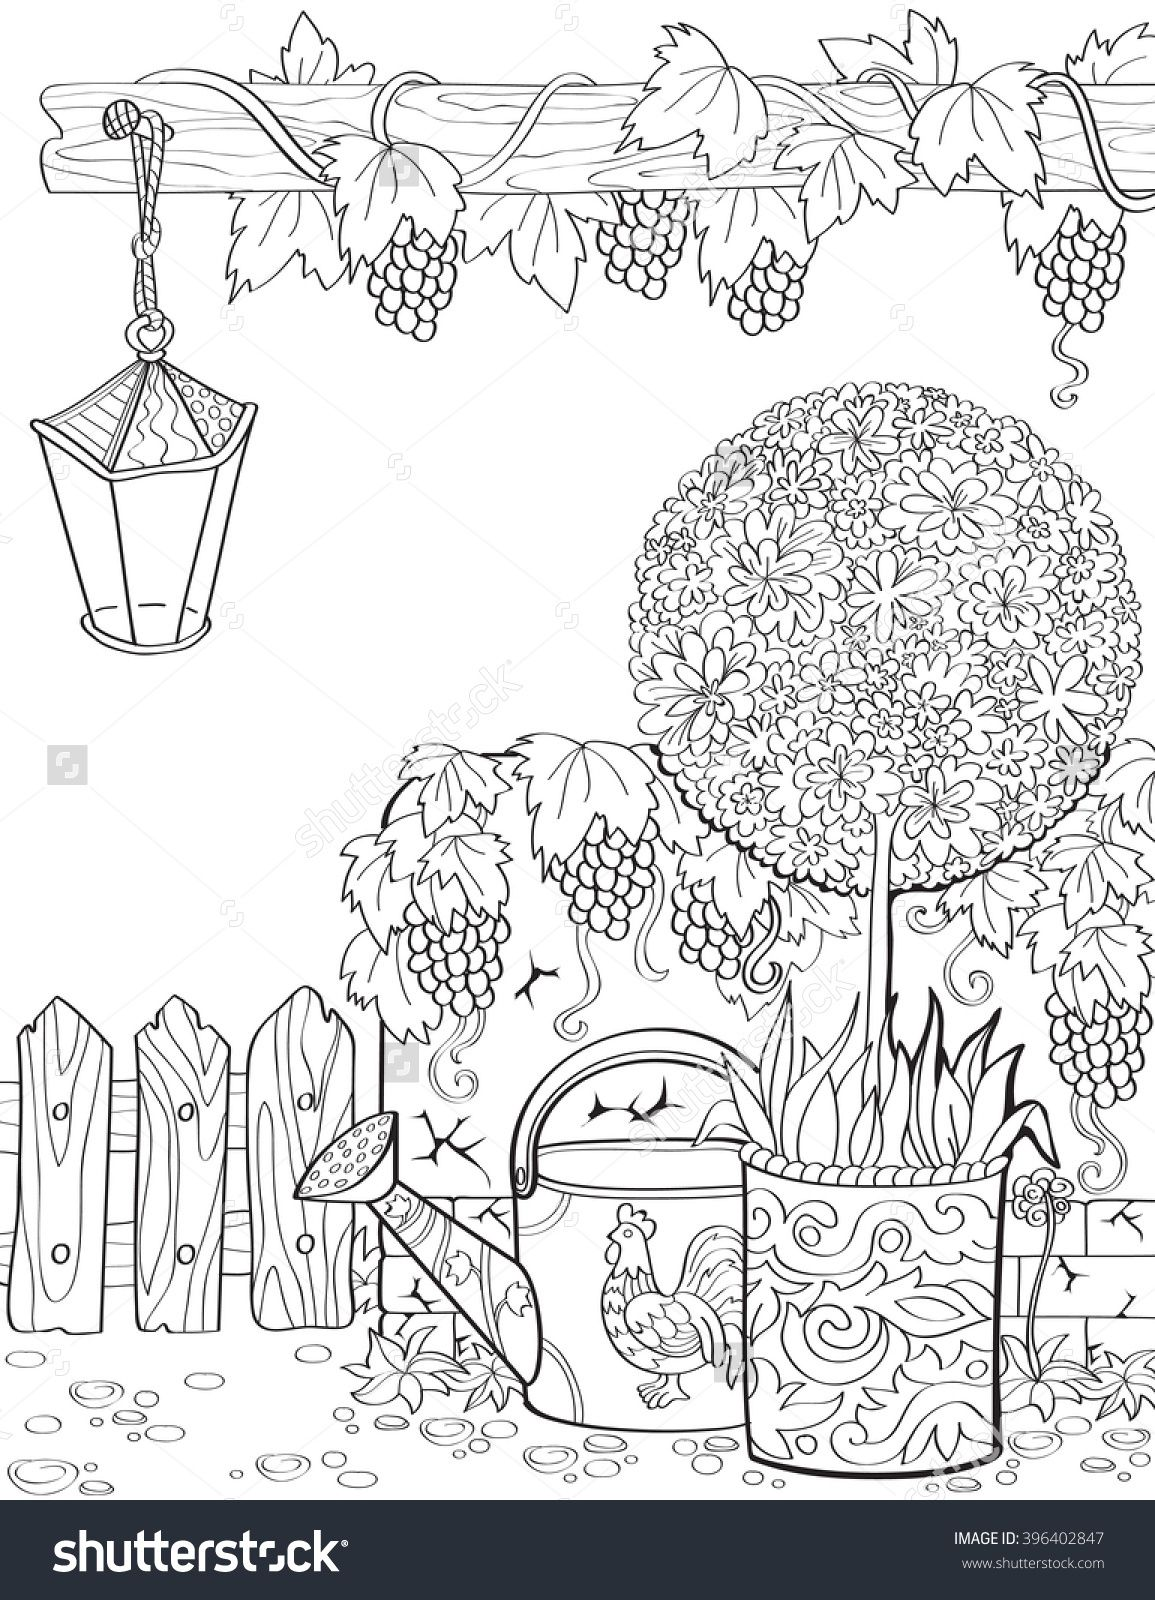 Gardening Time Coloring Page Malvorlagen Coloring Templates